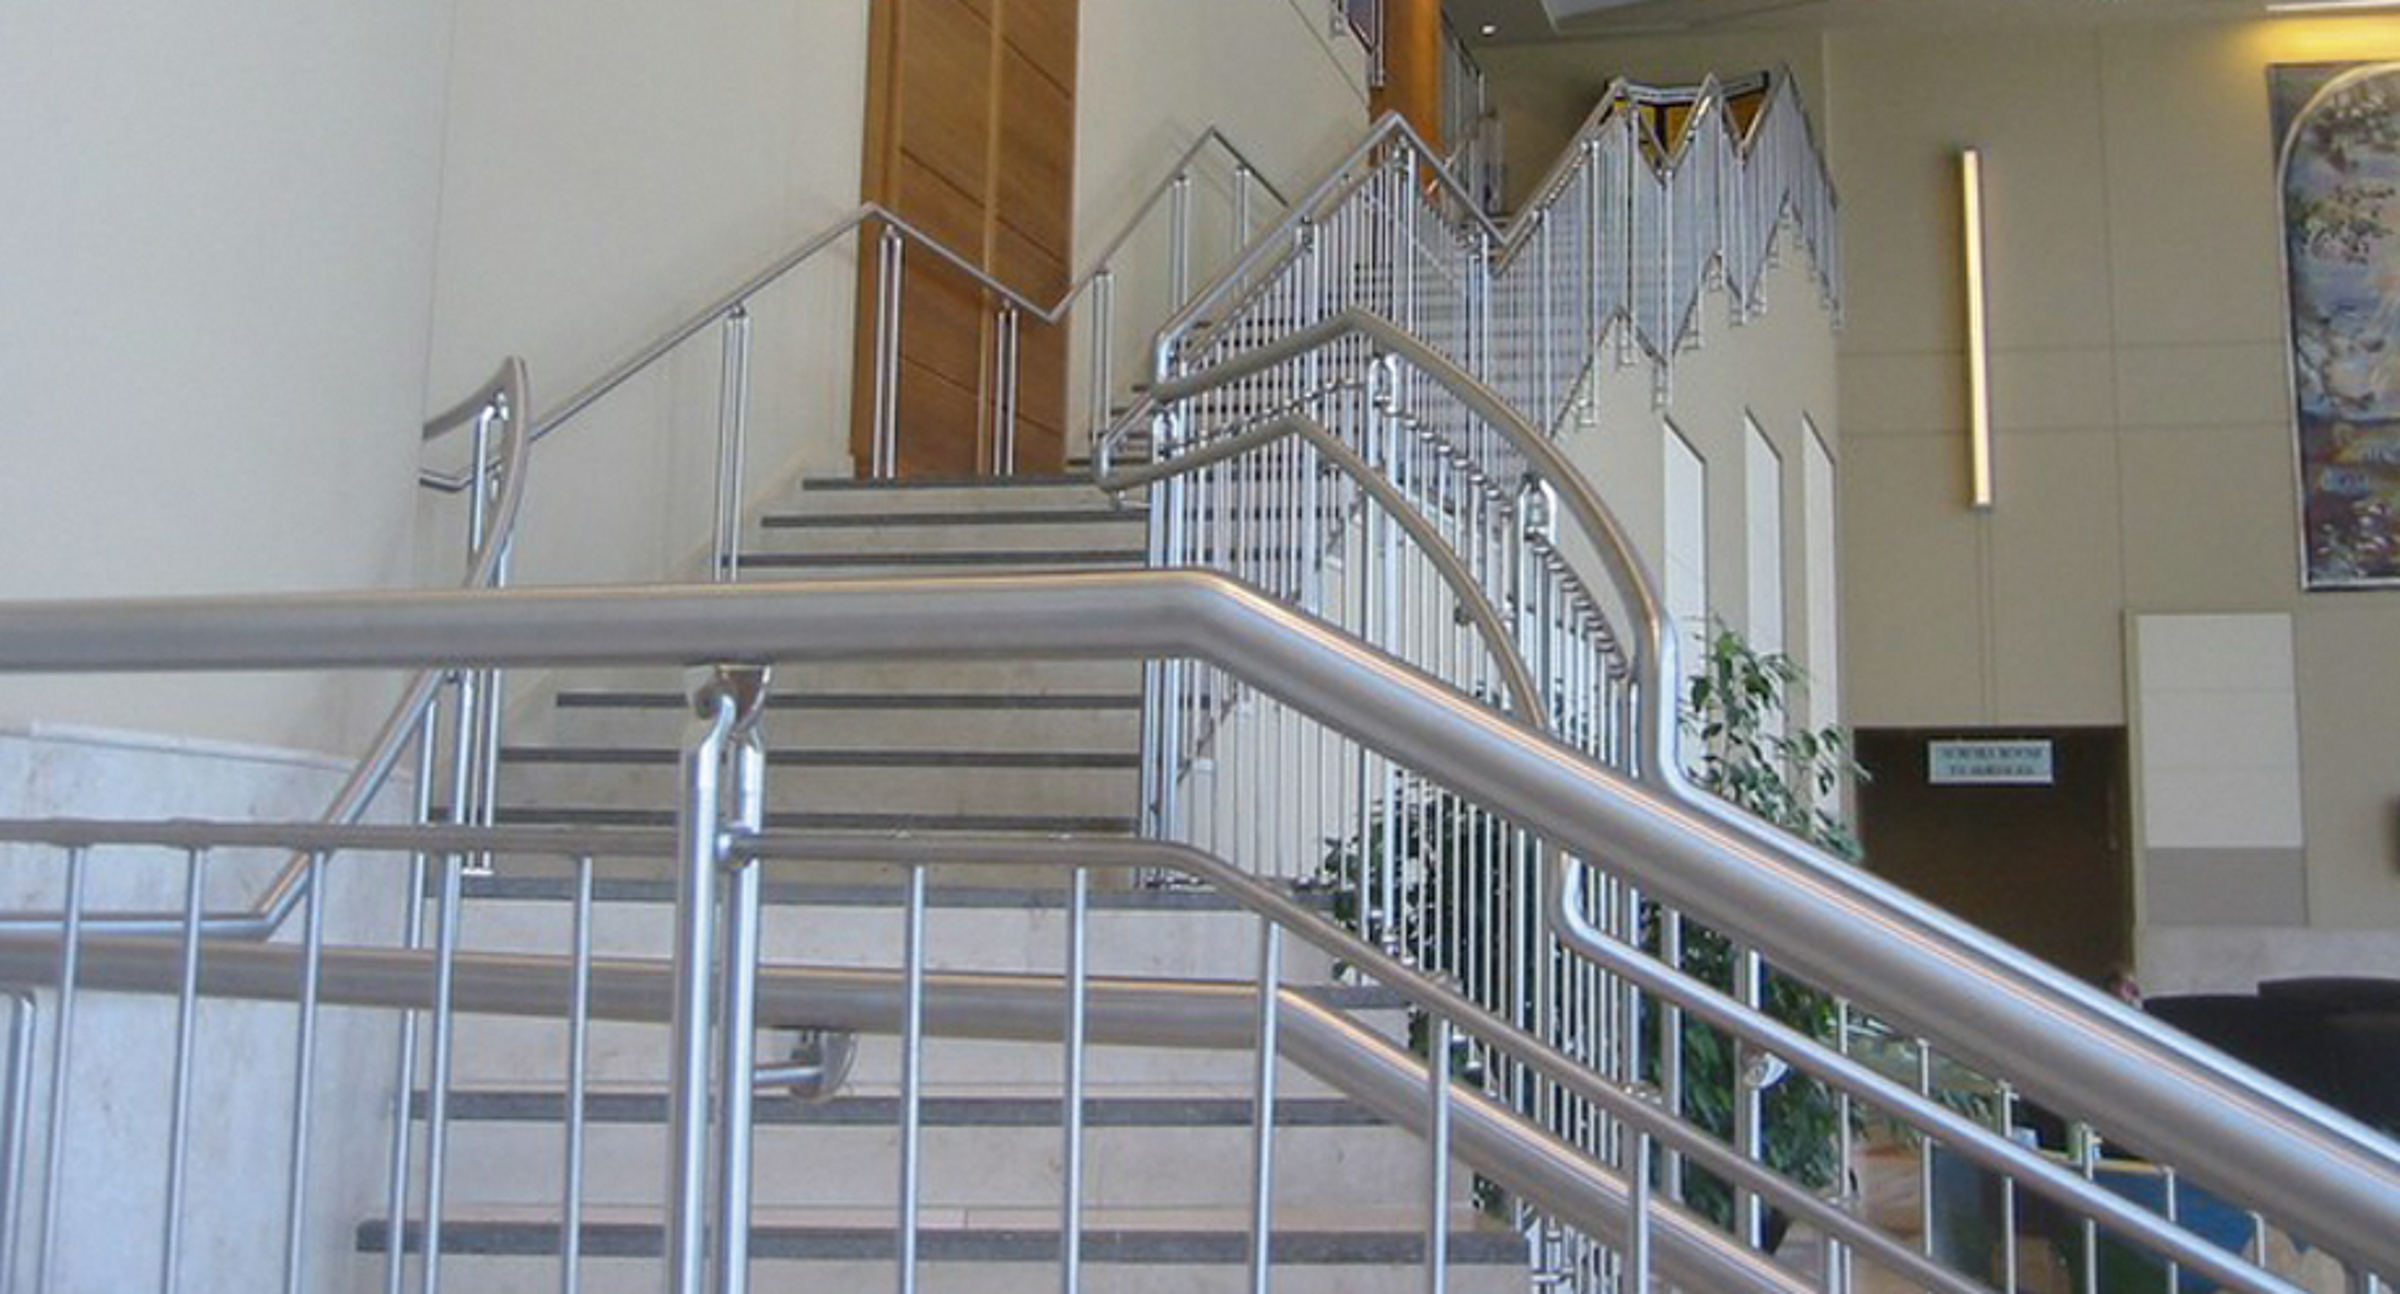 Stainless steel railings ǀ poppe potthoff